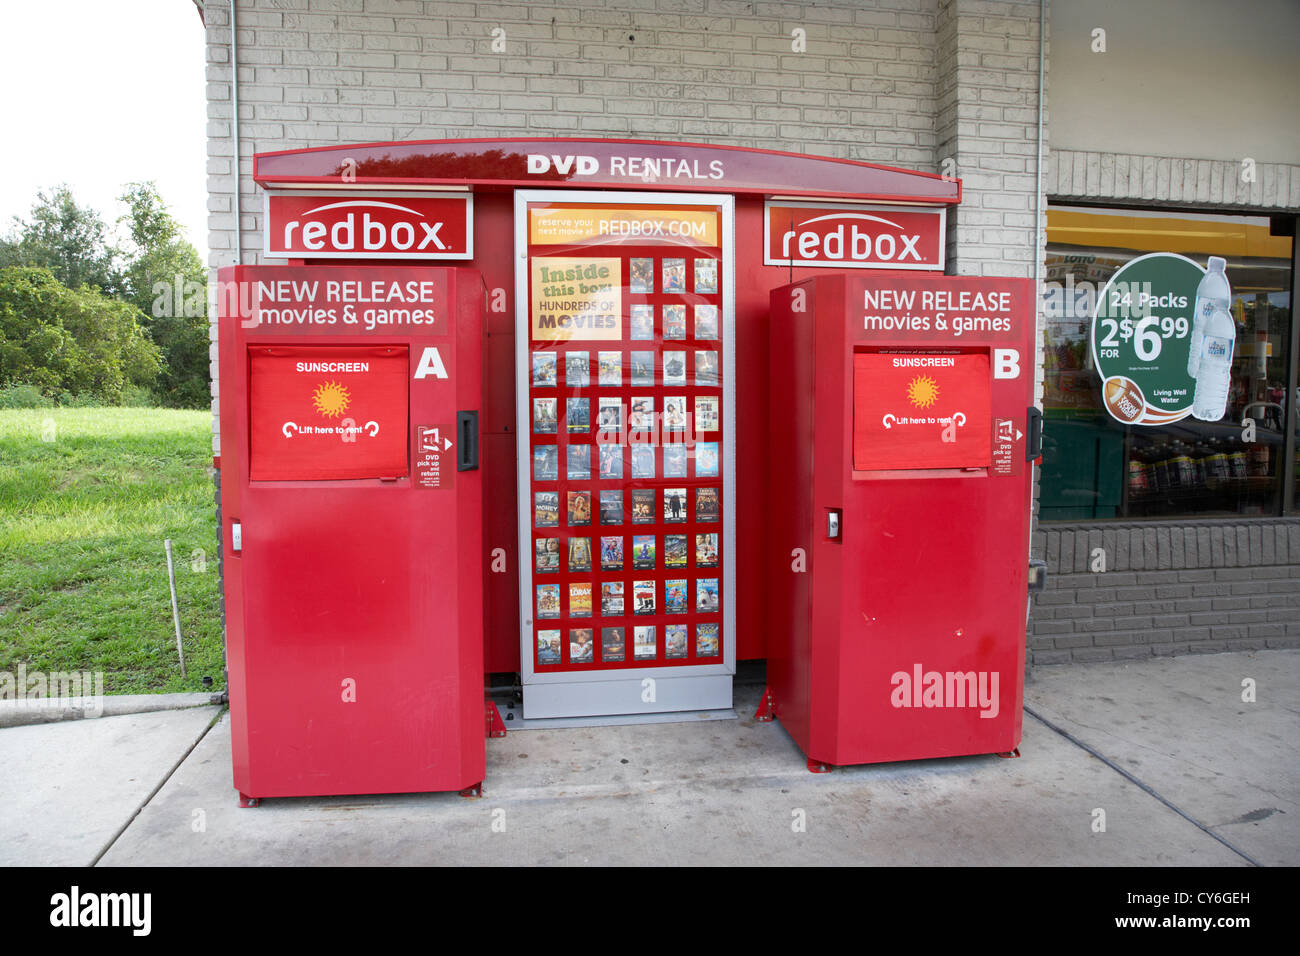 redbox dvd rental automated retail kiosk at a gas station